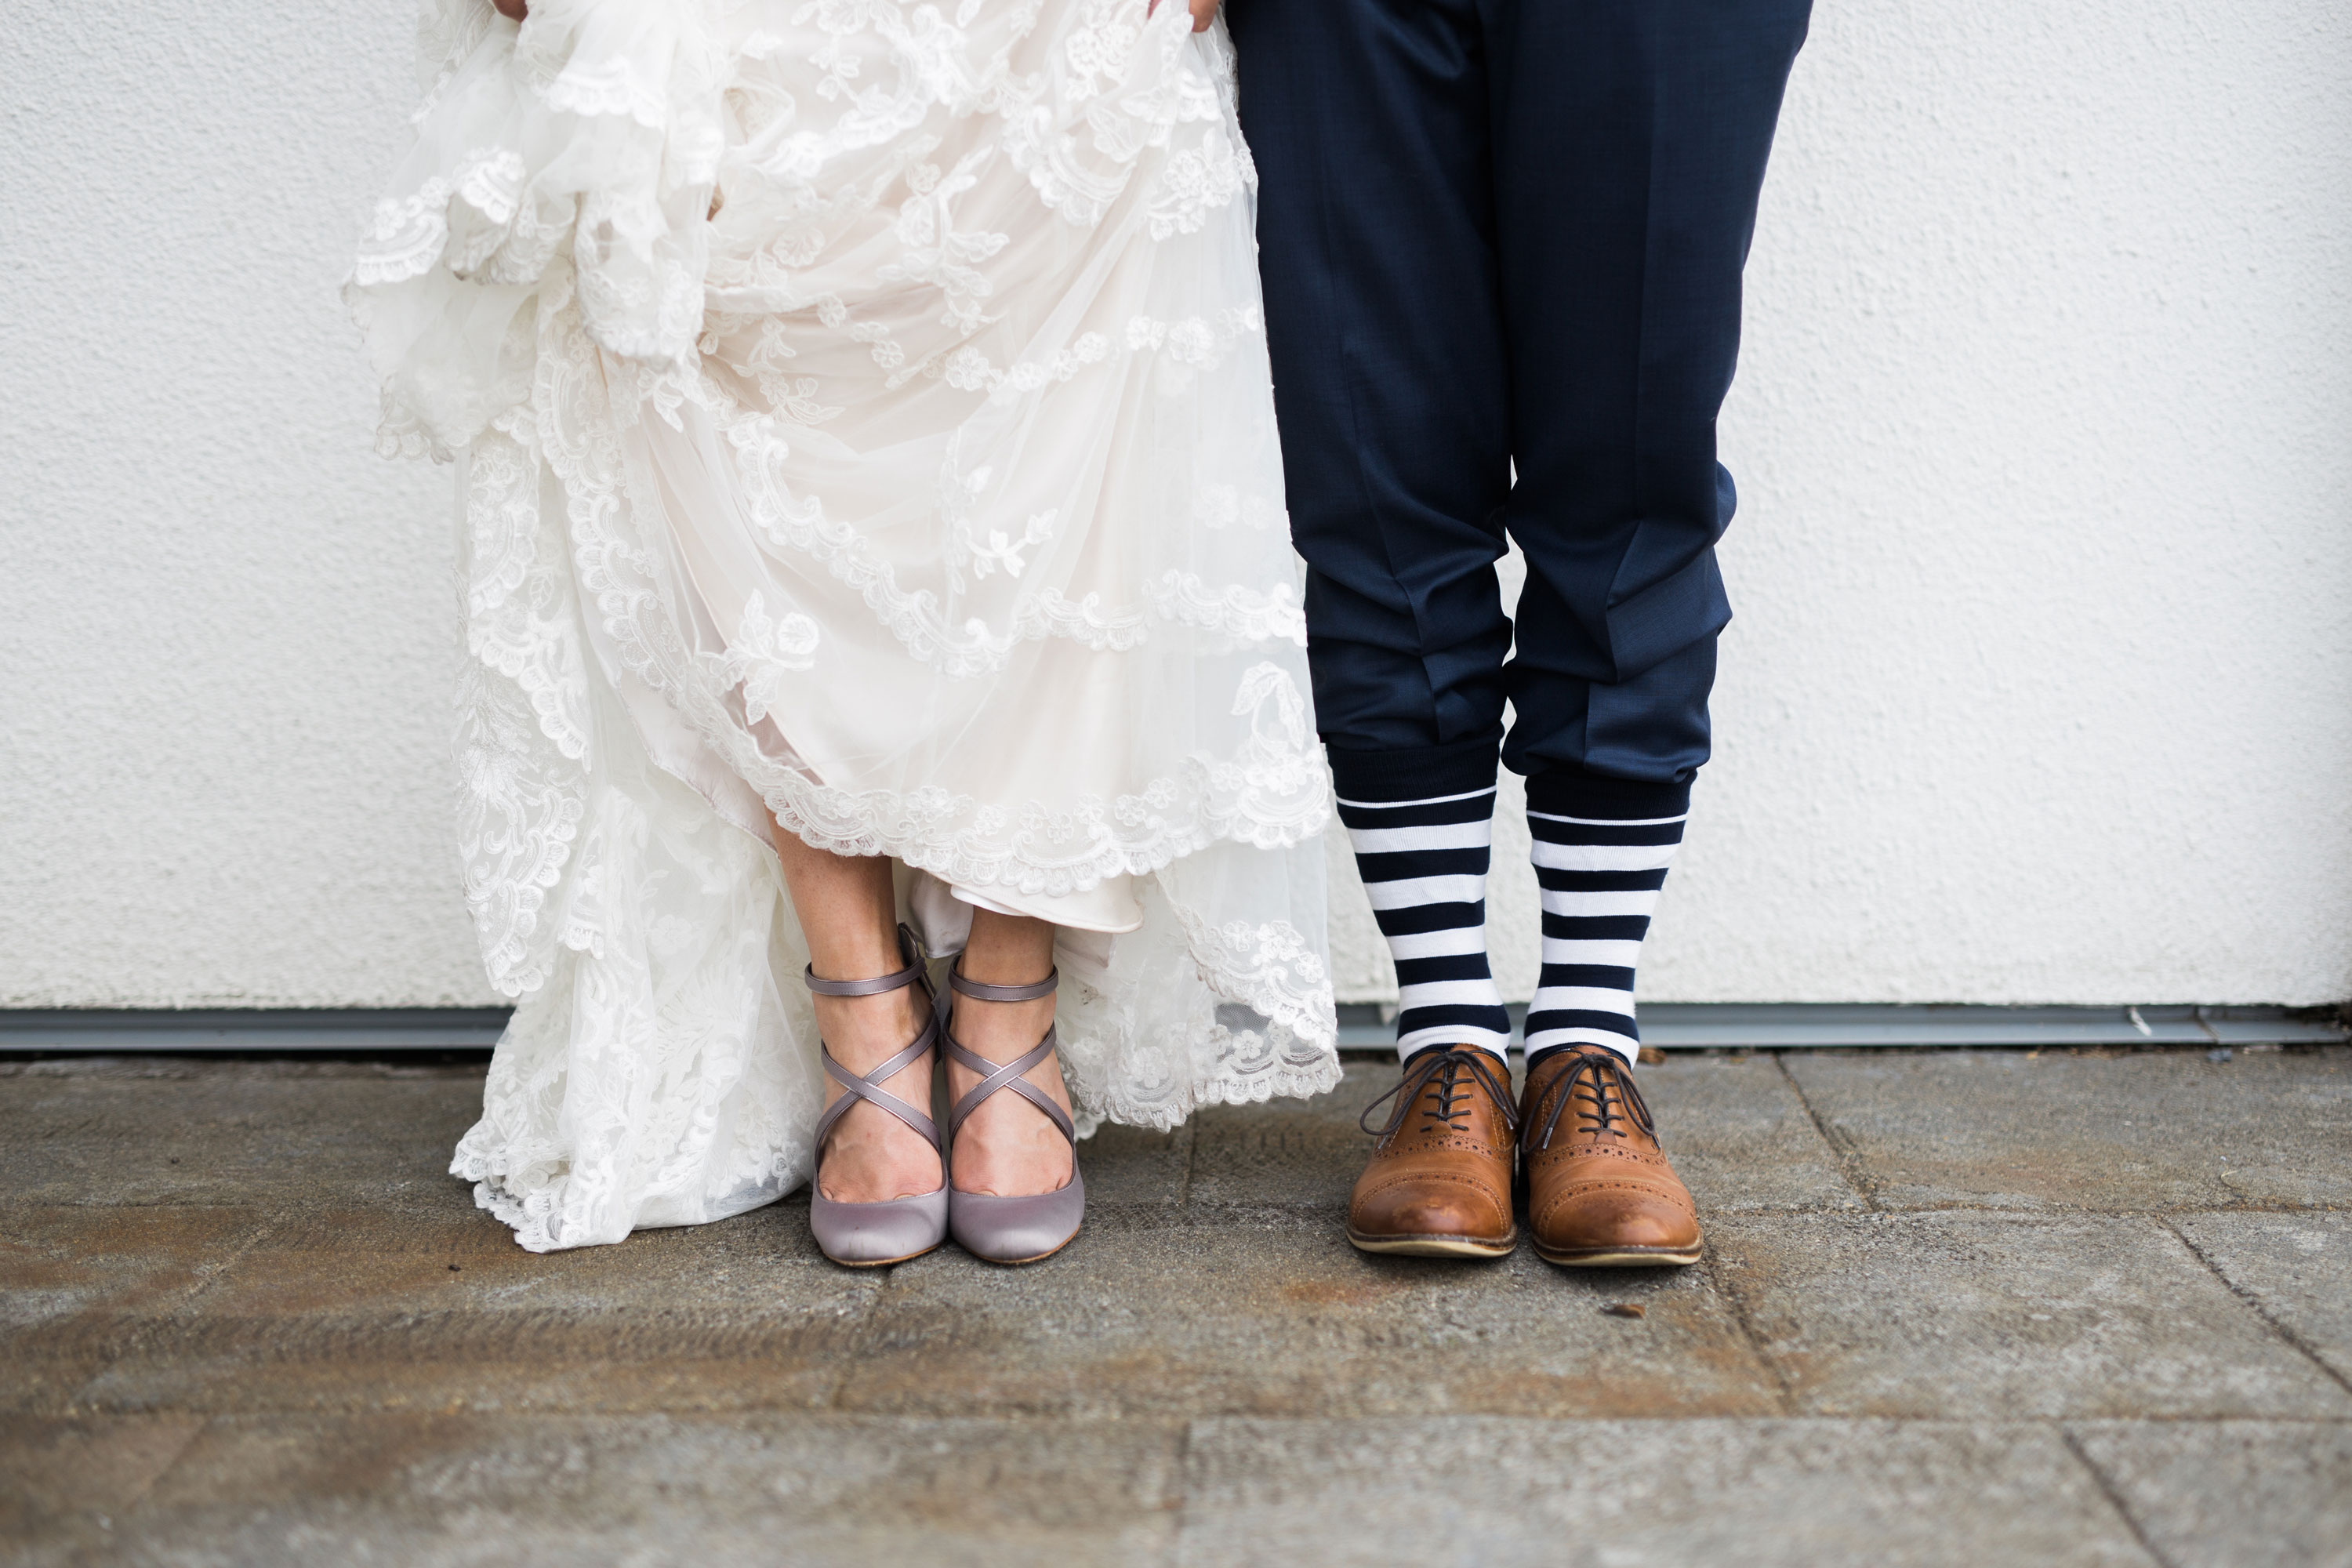 nicolle-and-david-wedding-feet-banner